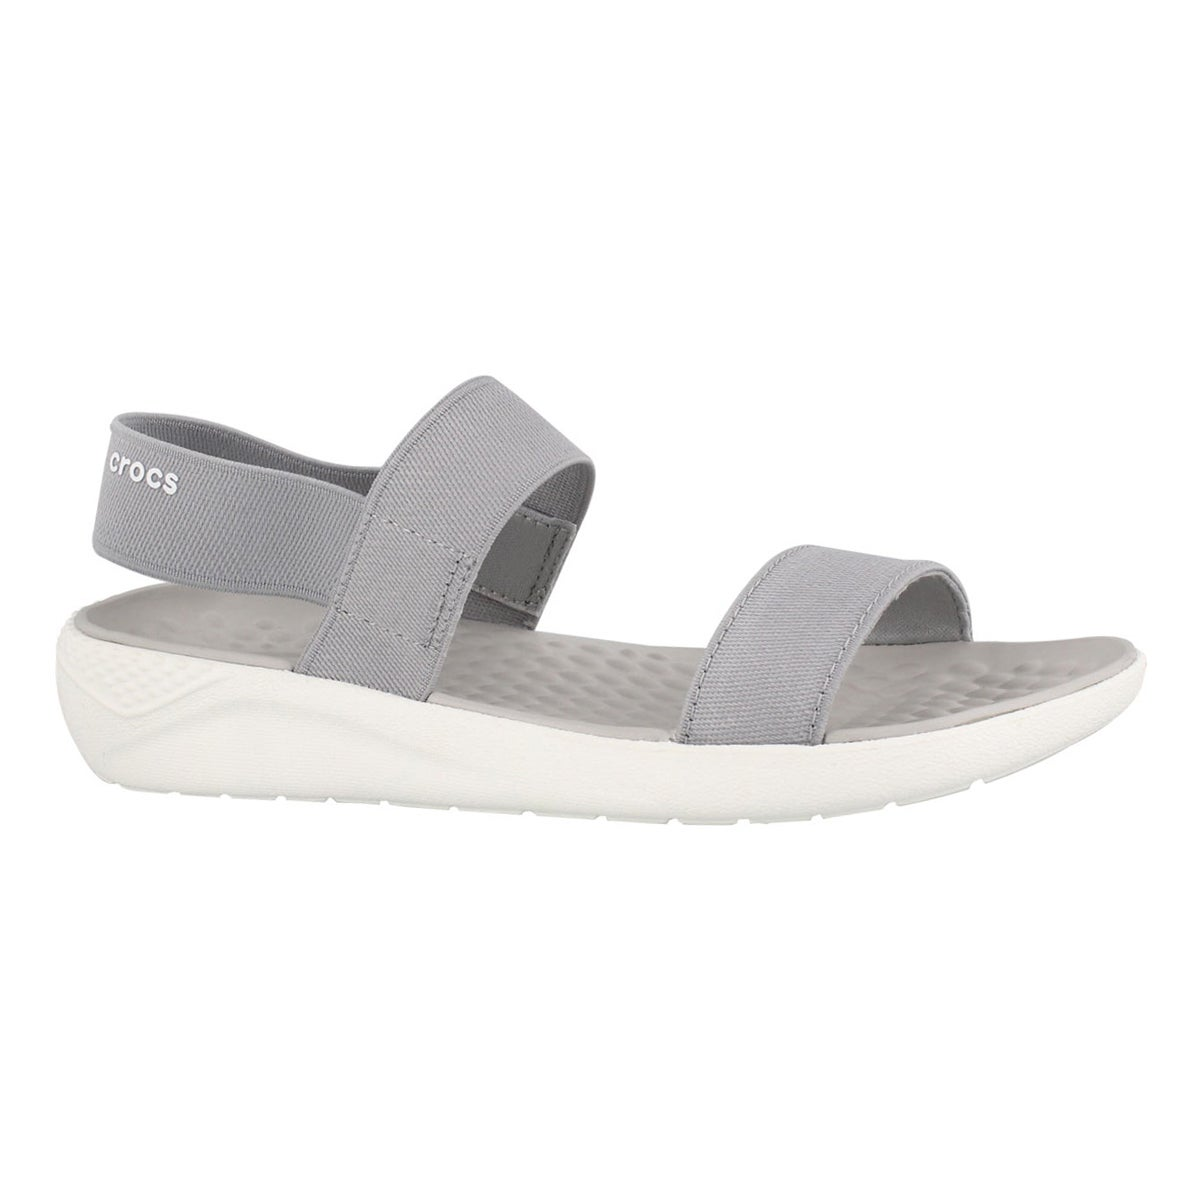 Lds LiteRide gry/wht casual sandal